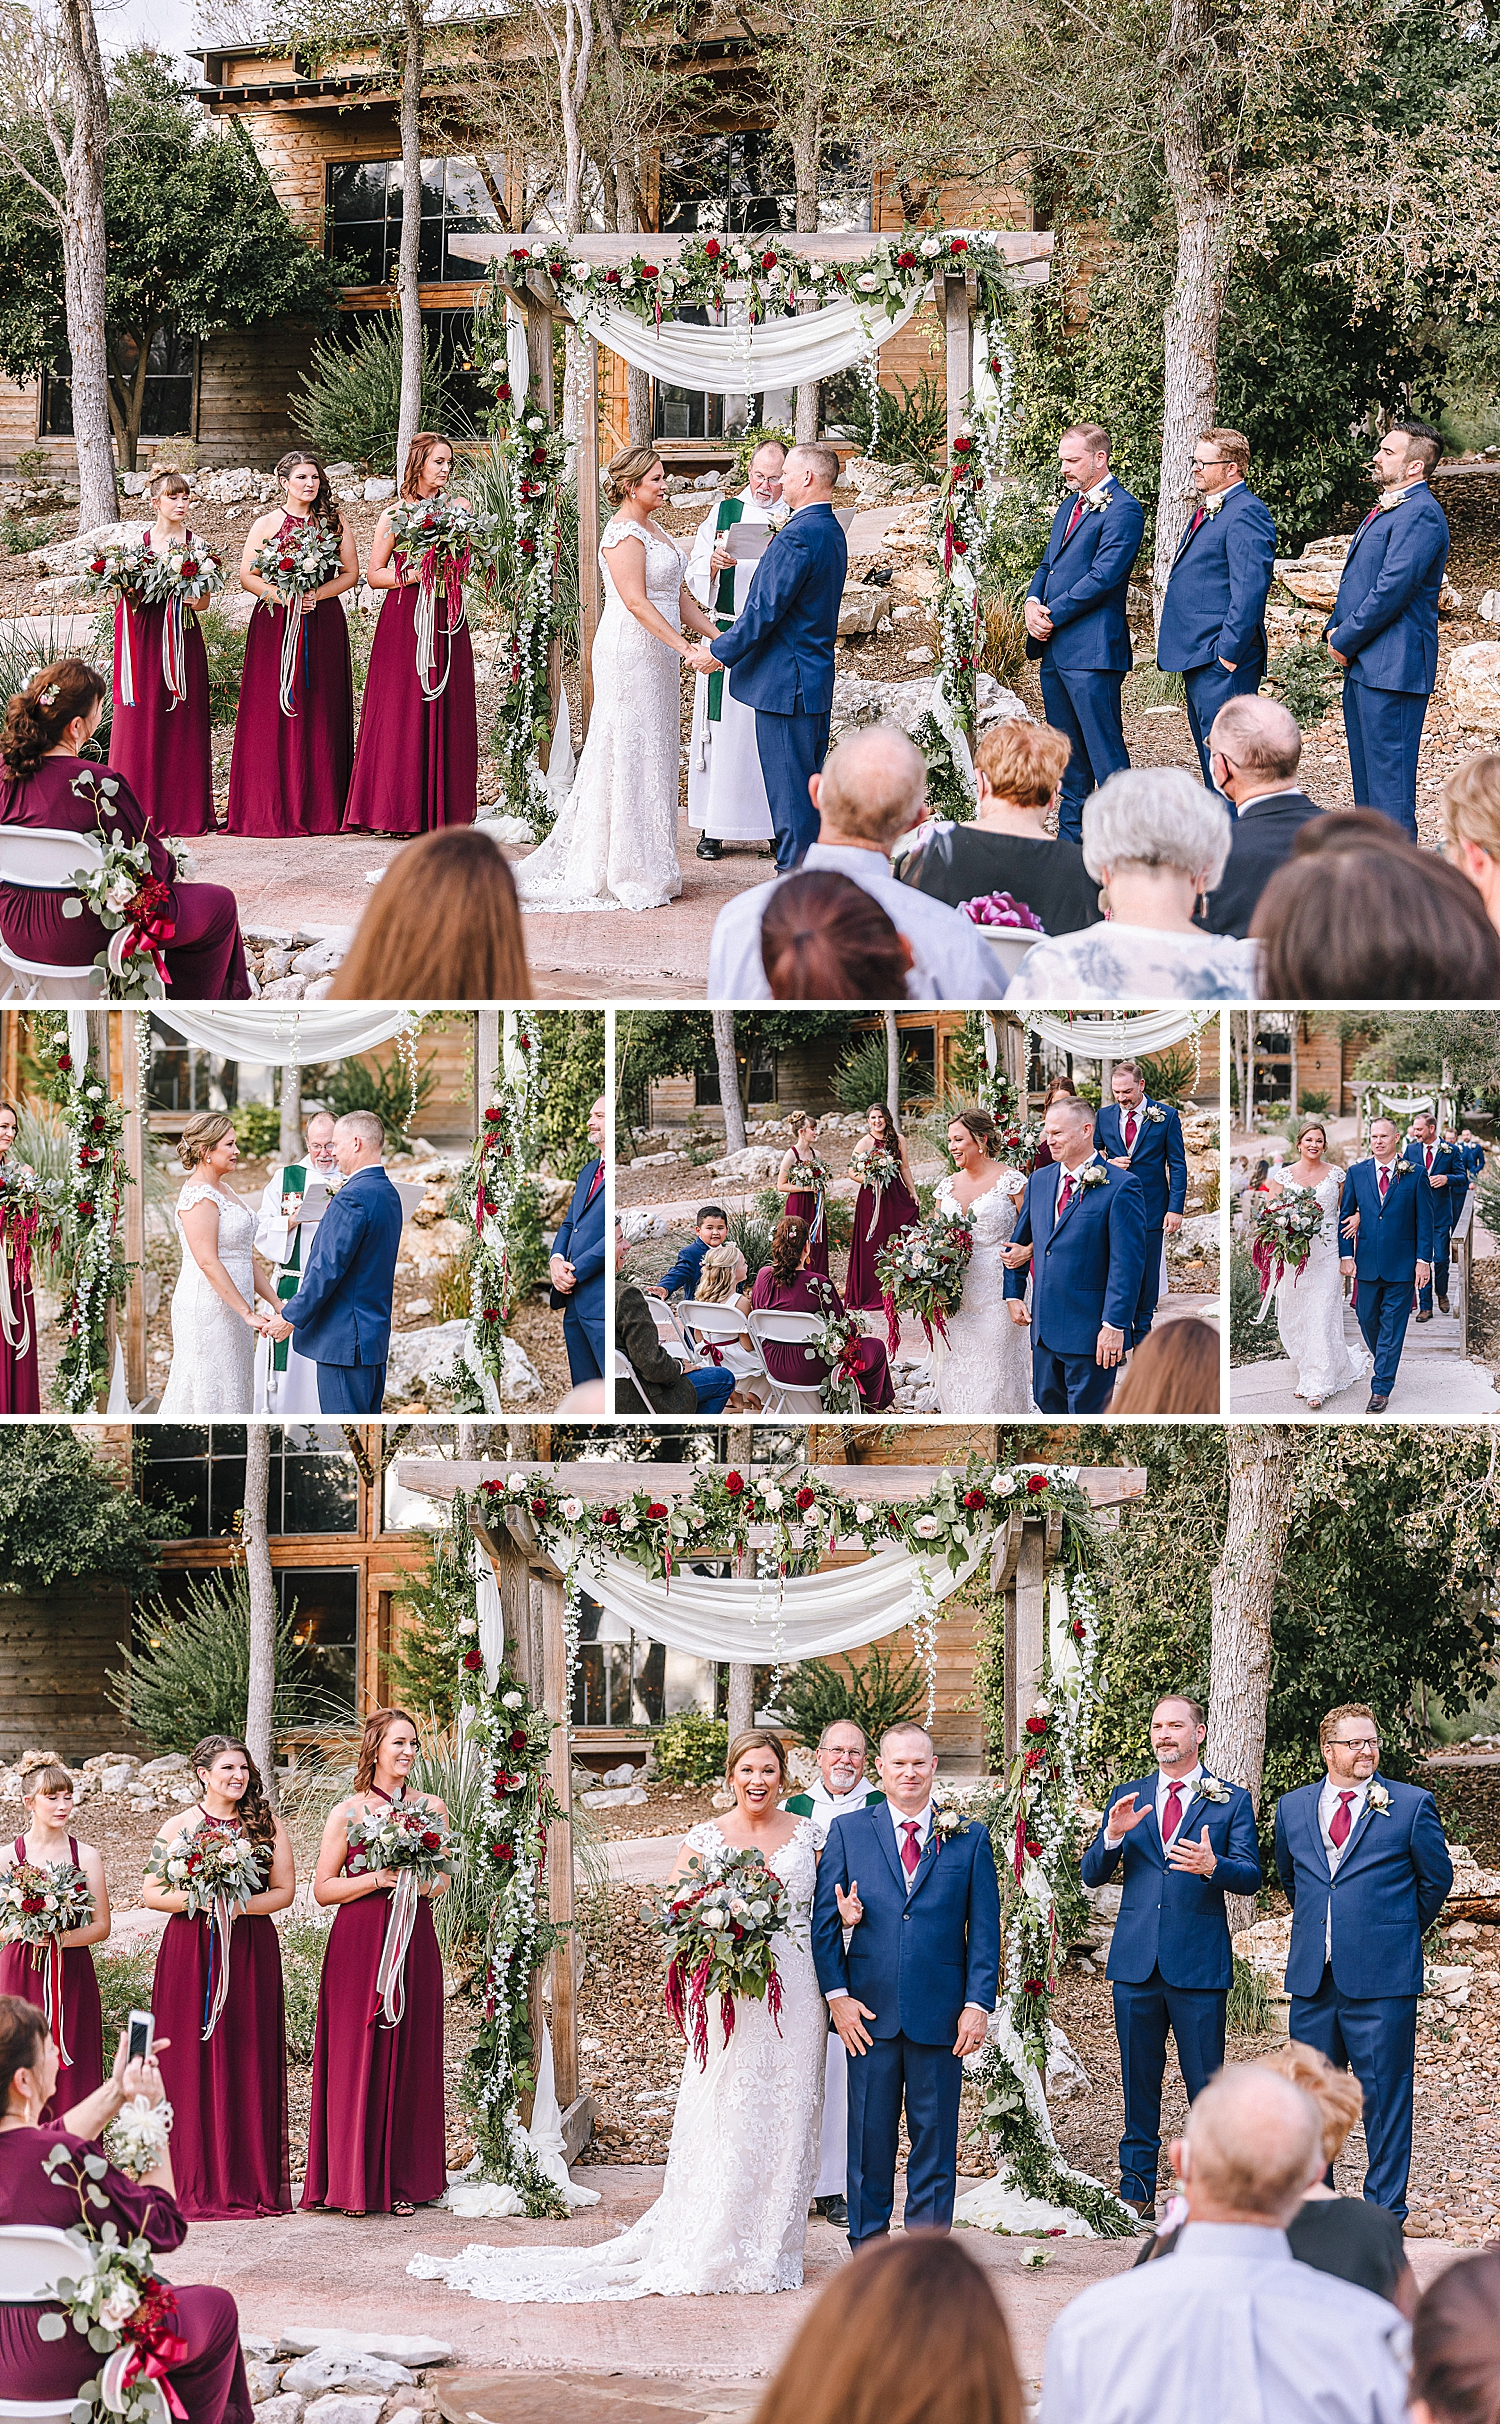 Geronimo-Oaks-Wedding-Venue-Seguin-Texas-Elegant-Navy-Burgundy-Wedding-Carly-Barton-Photography_0031.jpg